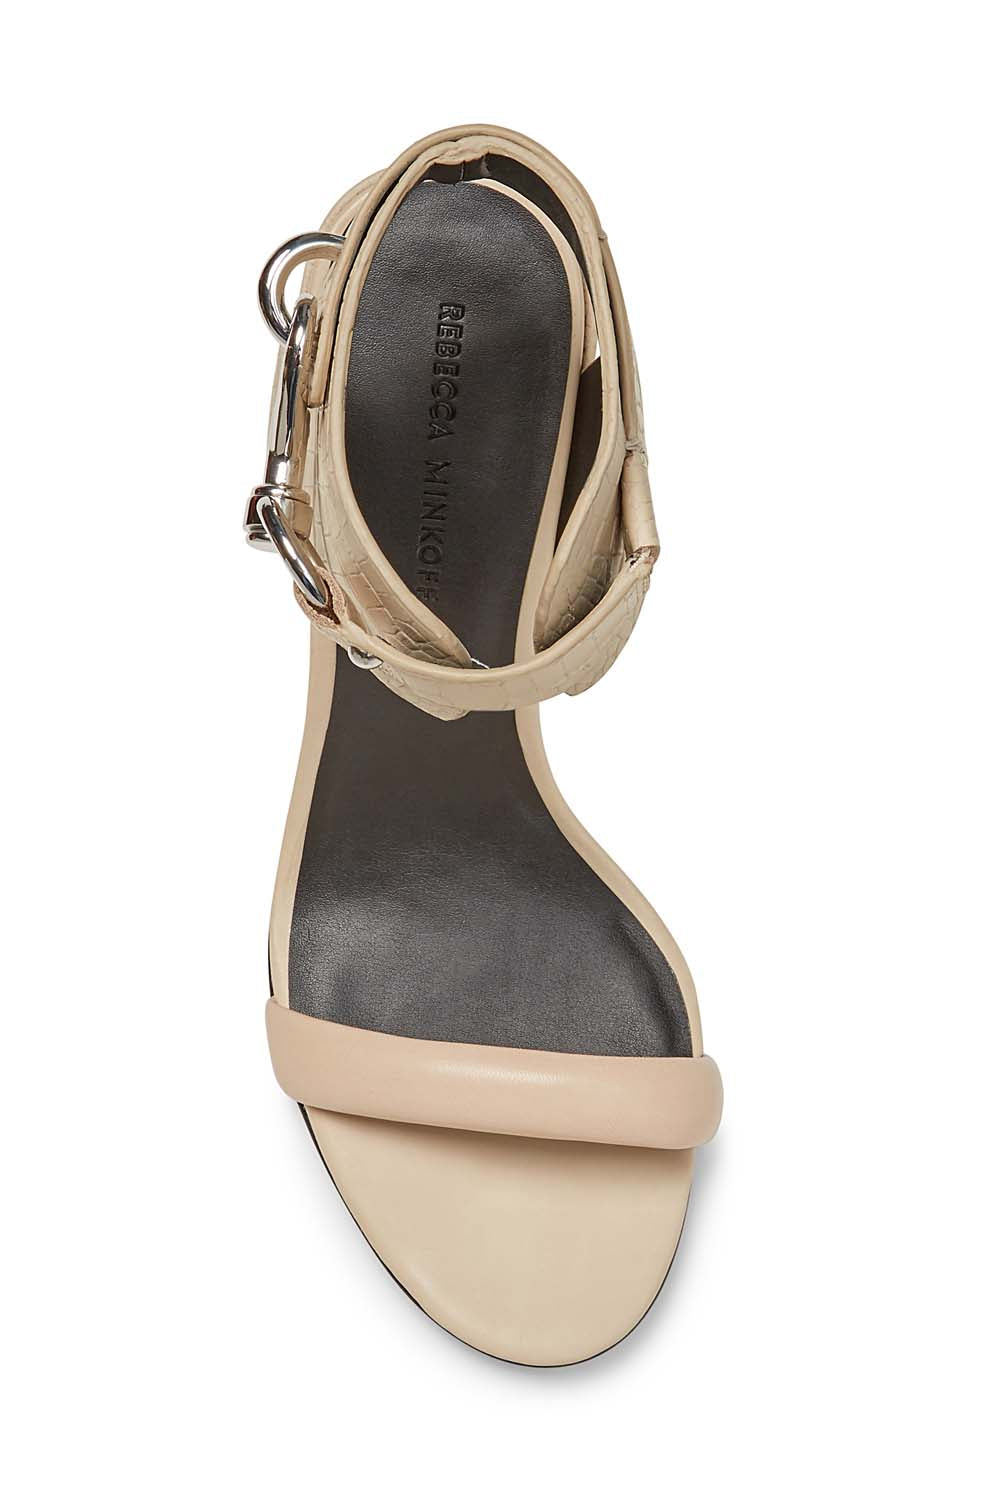 Malina Too Sandal